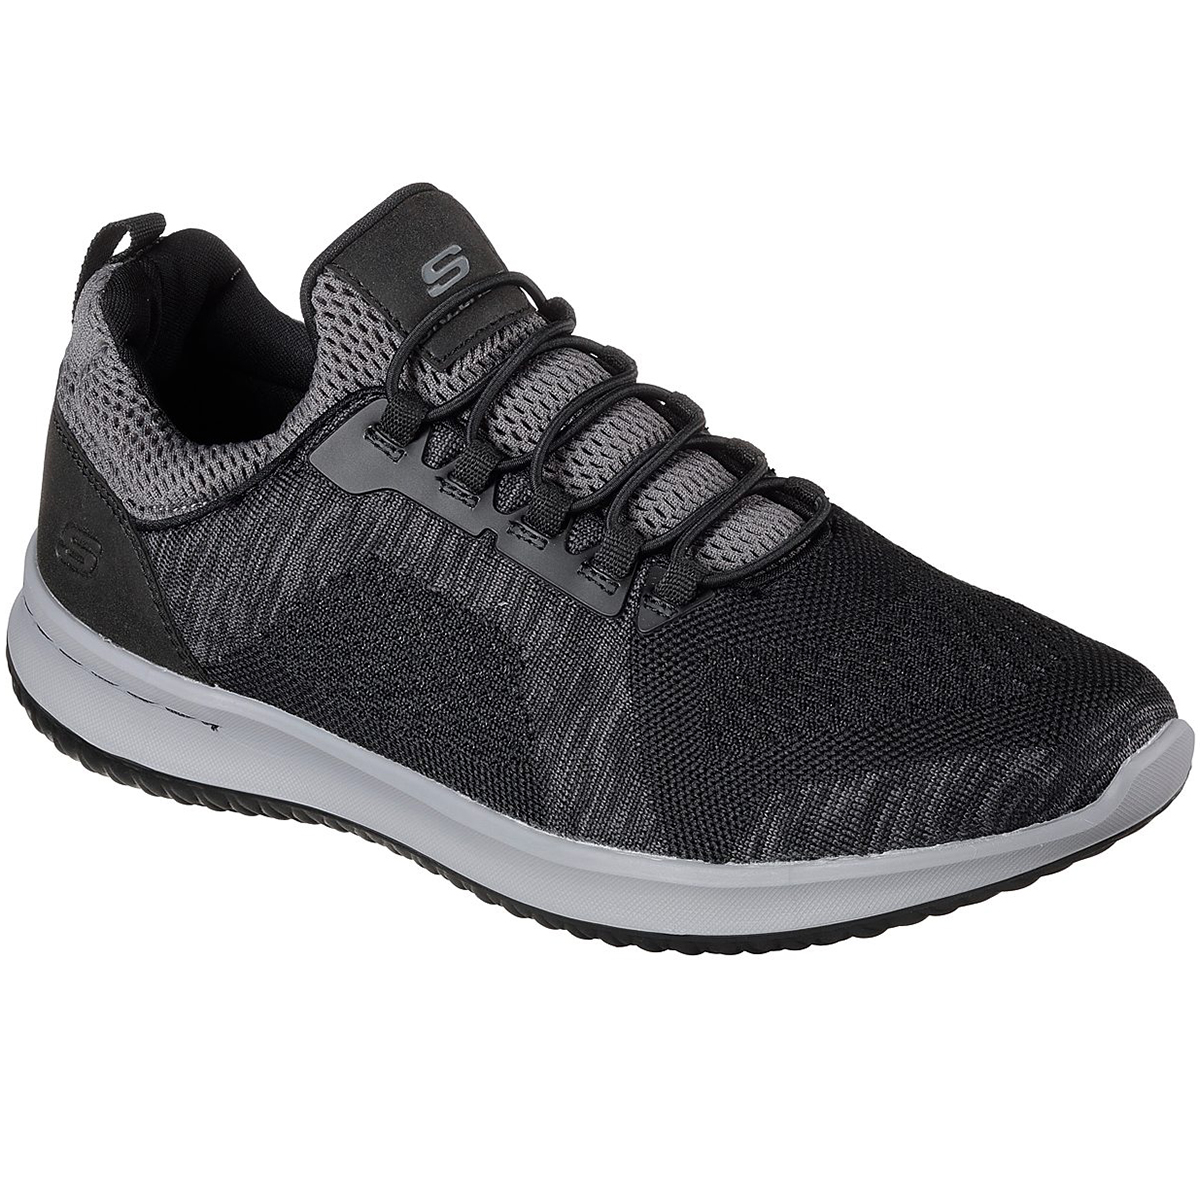 Skechers Men's Delson  -  Brewton Sneakers - Black, 9